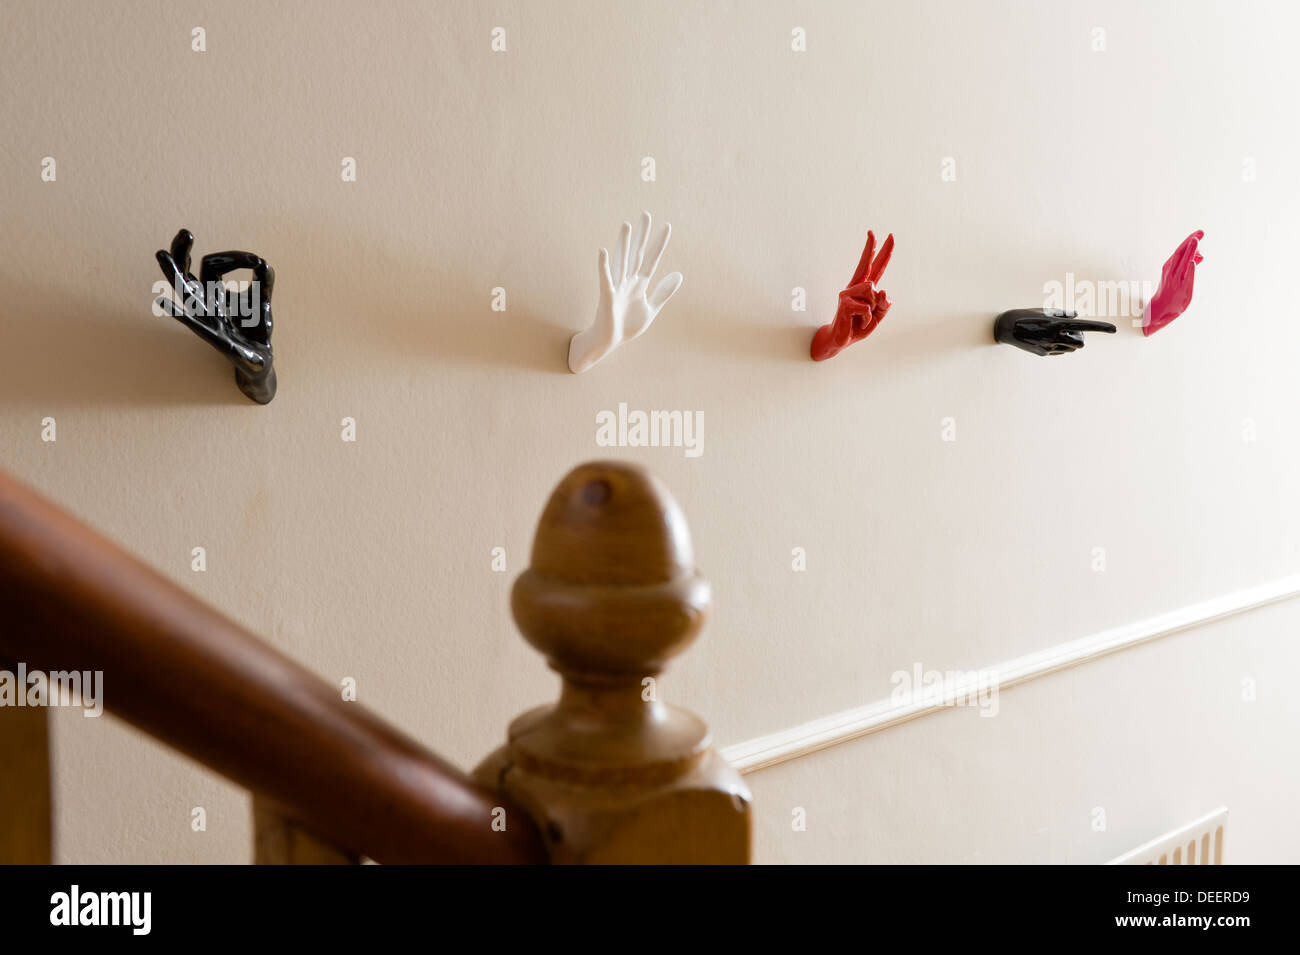 Wall mounted sculptural hands provide unusual coat hooks - Stock Image & Coat Hooks And Wall Stock Photos \u0026 Coat Hooks And Wall Stock Images ...